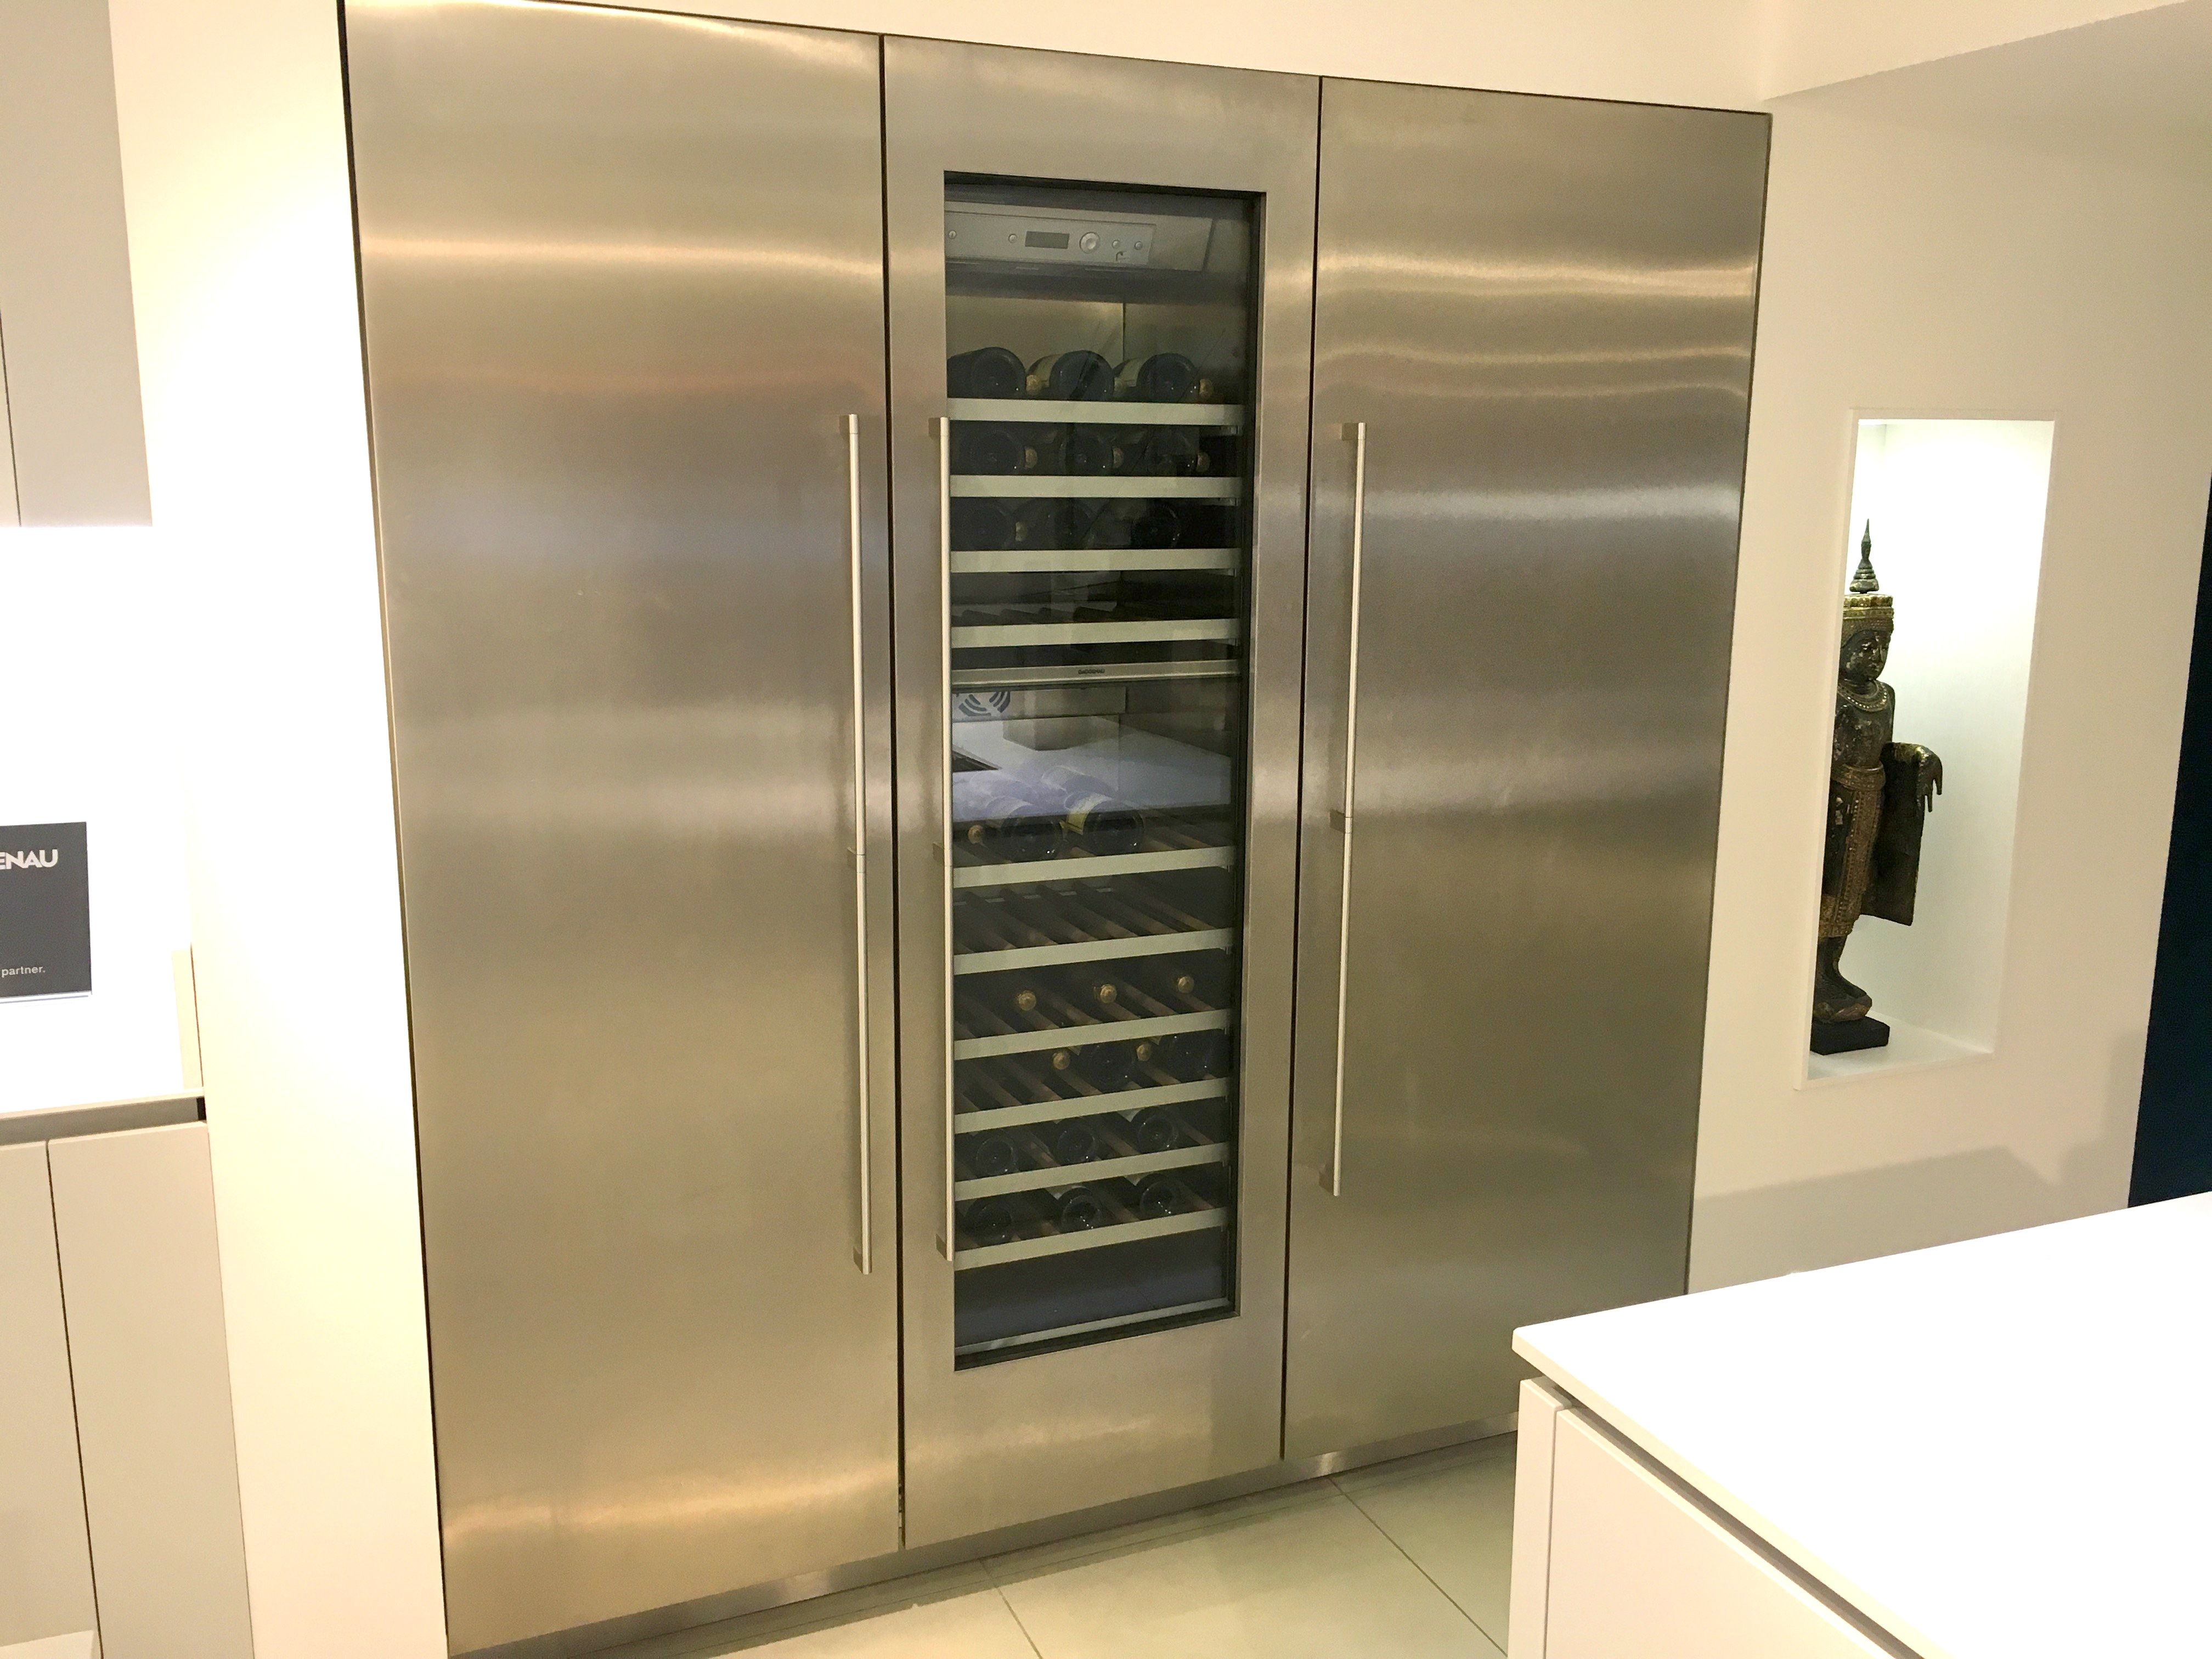 Exchange your used kitchen appliances for these stunning Gaggenau